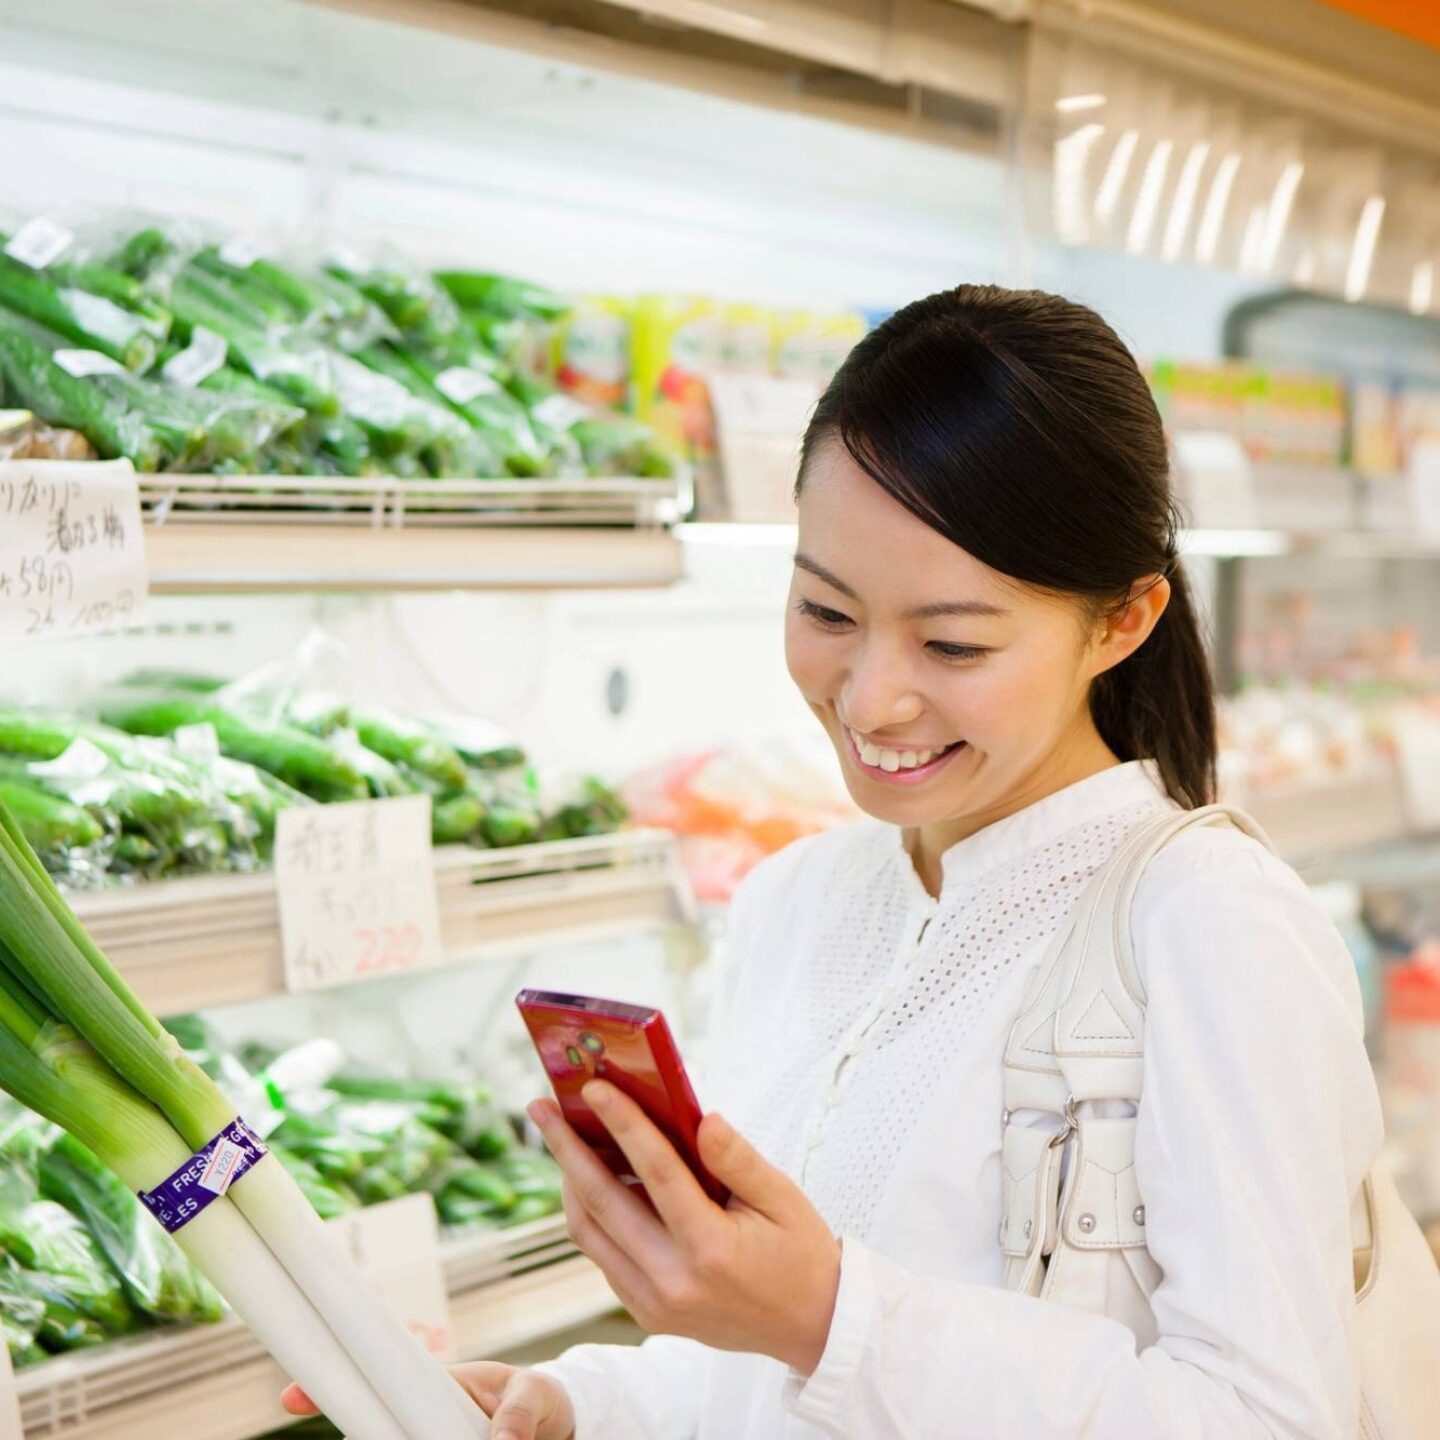 Woman looking at smartphone during grocery shopping - Three Tips to Shop for Plant-Based Food | NSF International